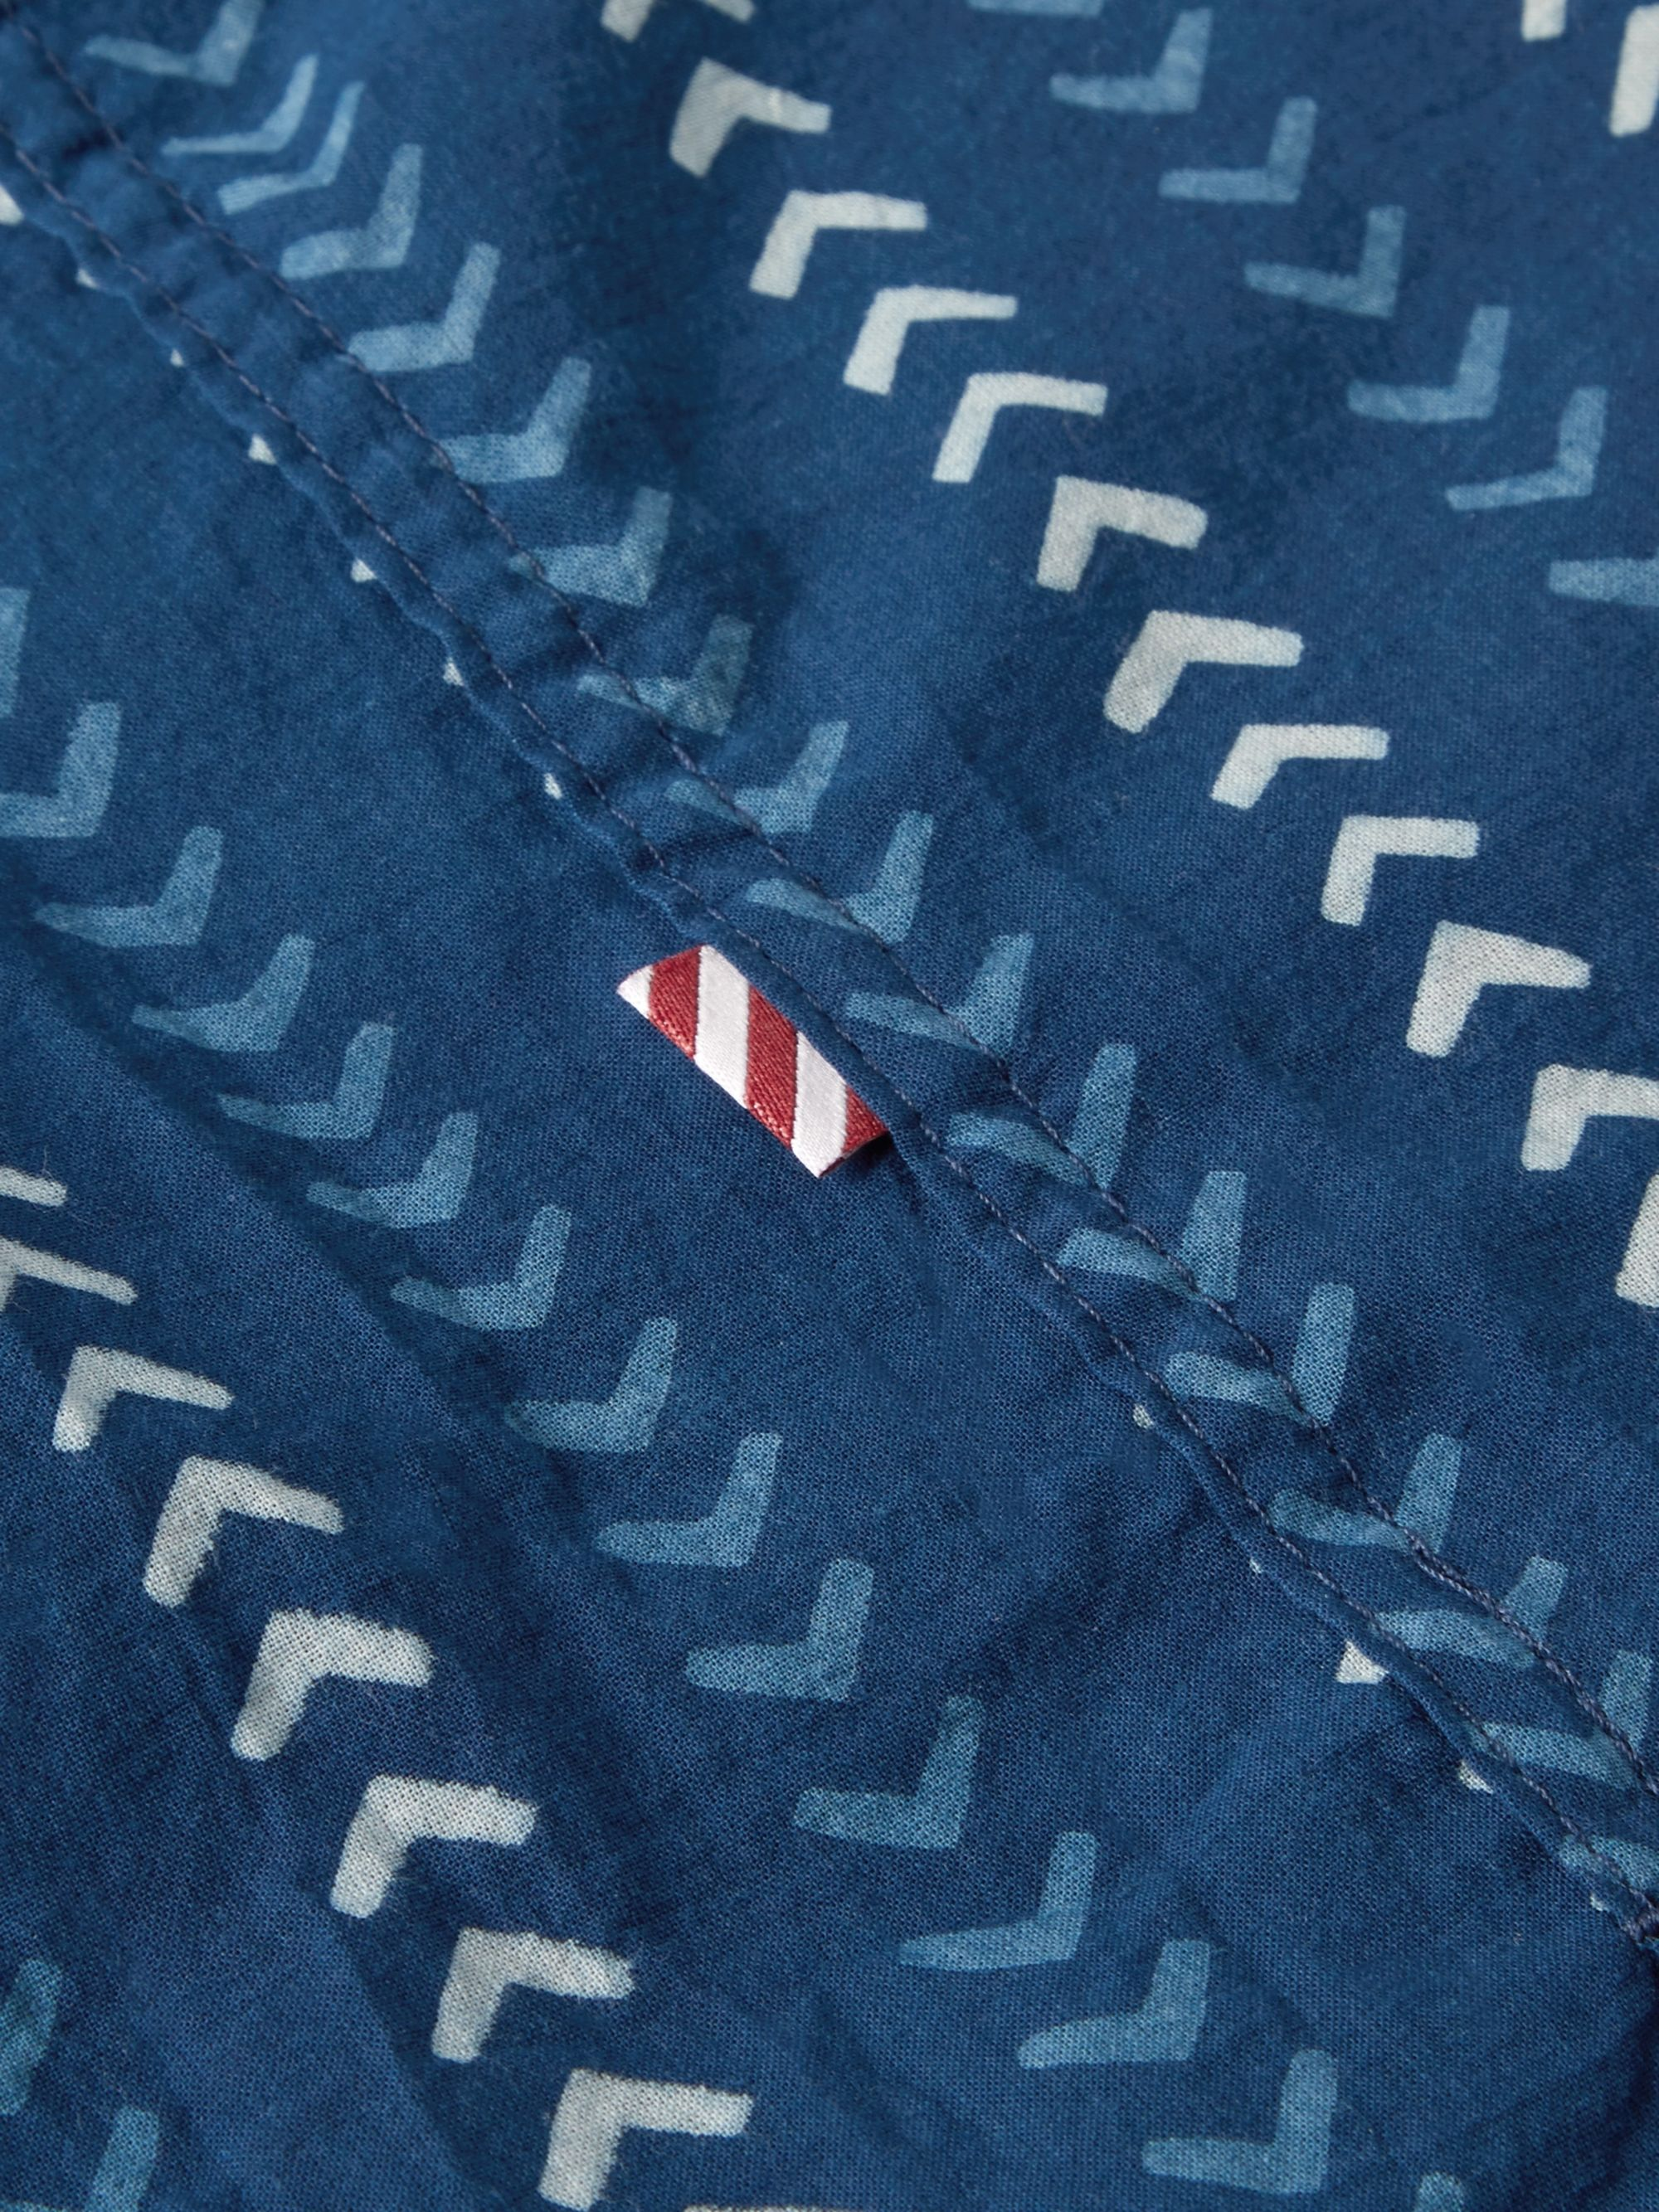 Freemans Sporting Club Camp-Collar Indigo-Dyed Printed Cotton Shirt